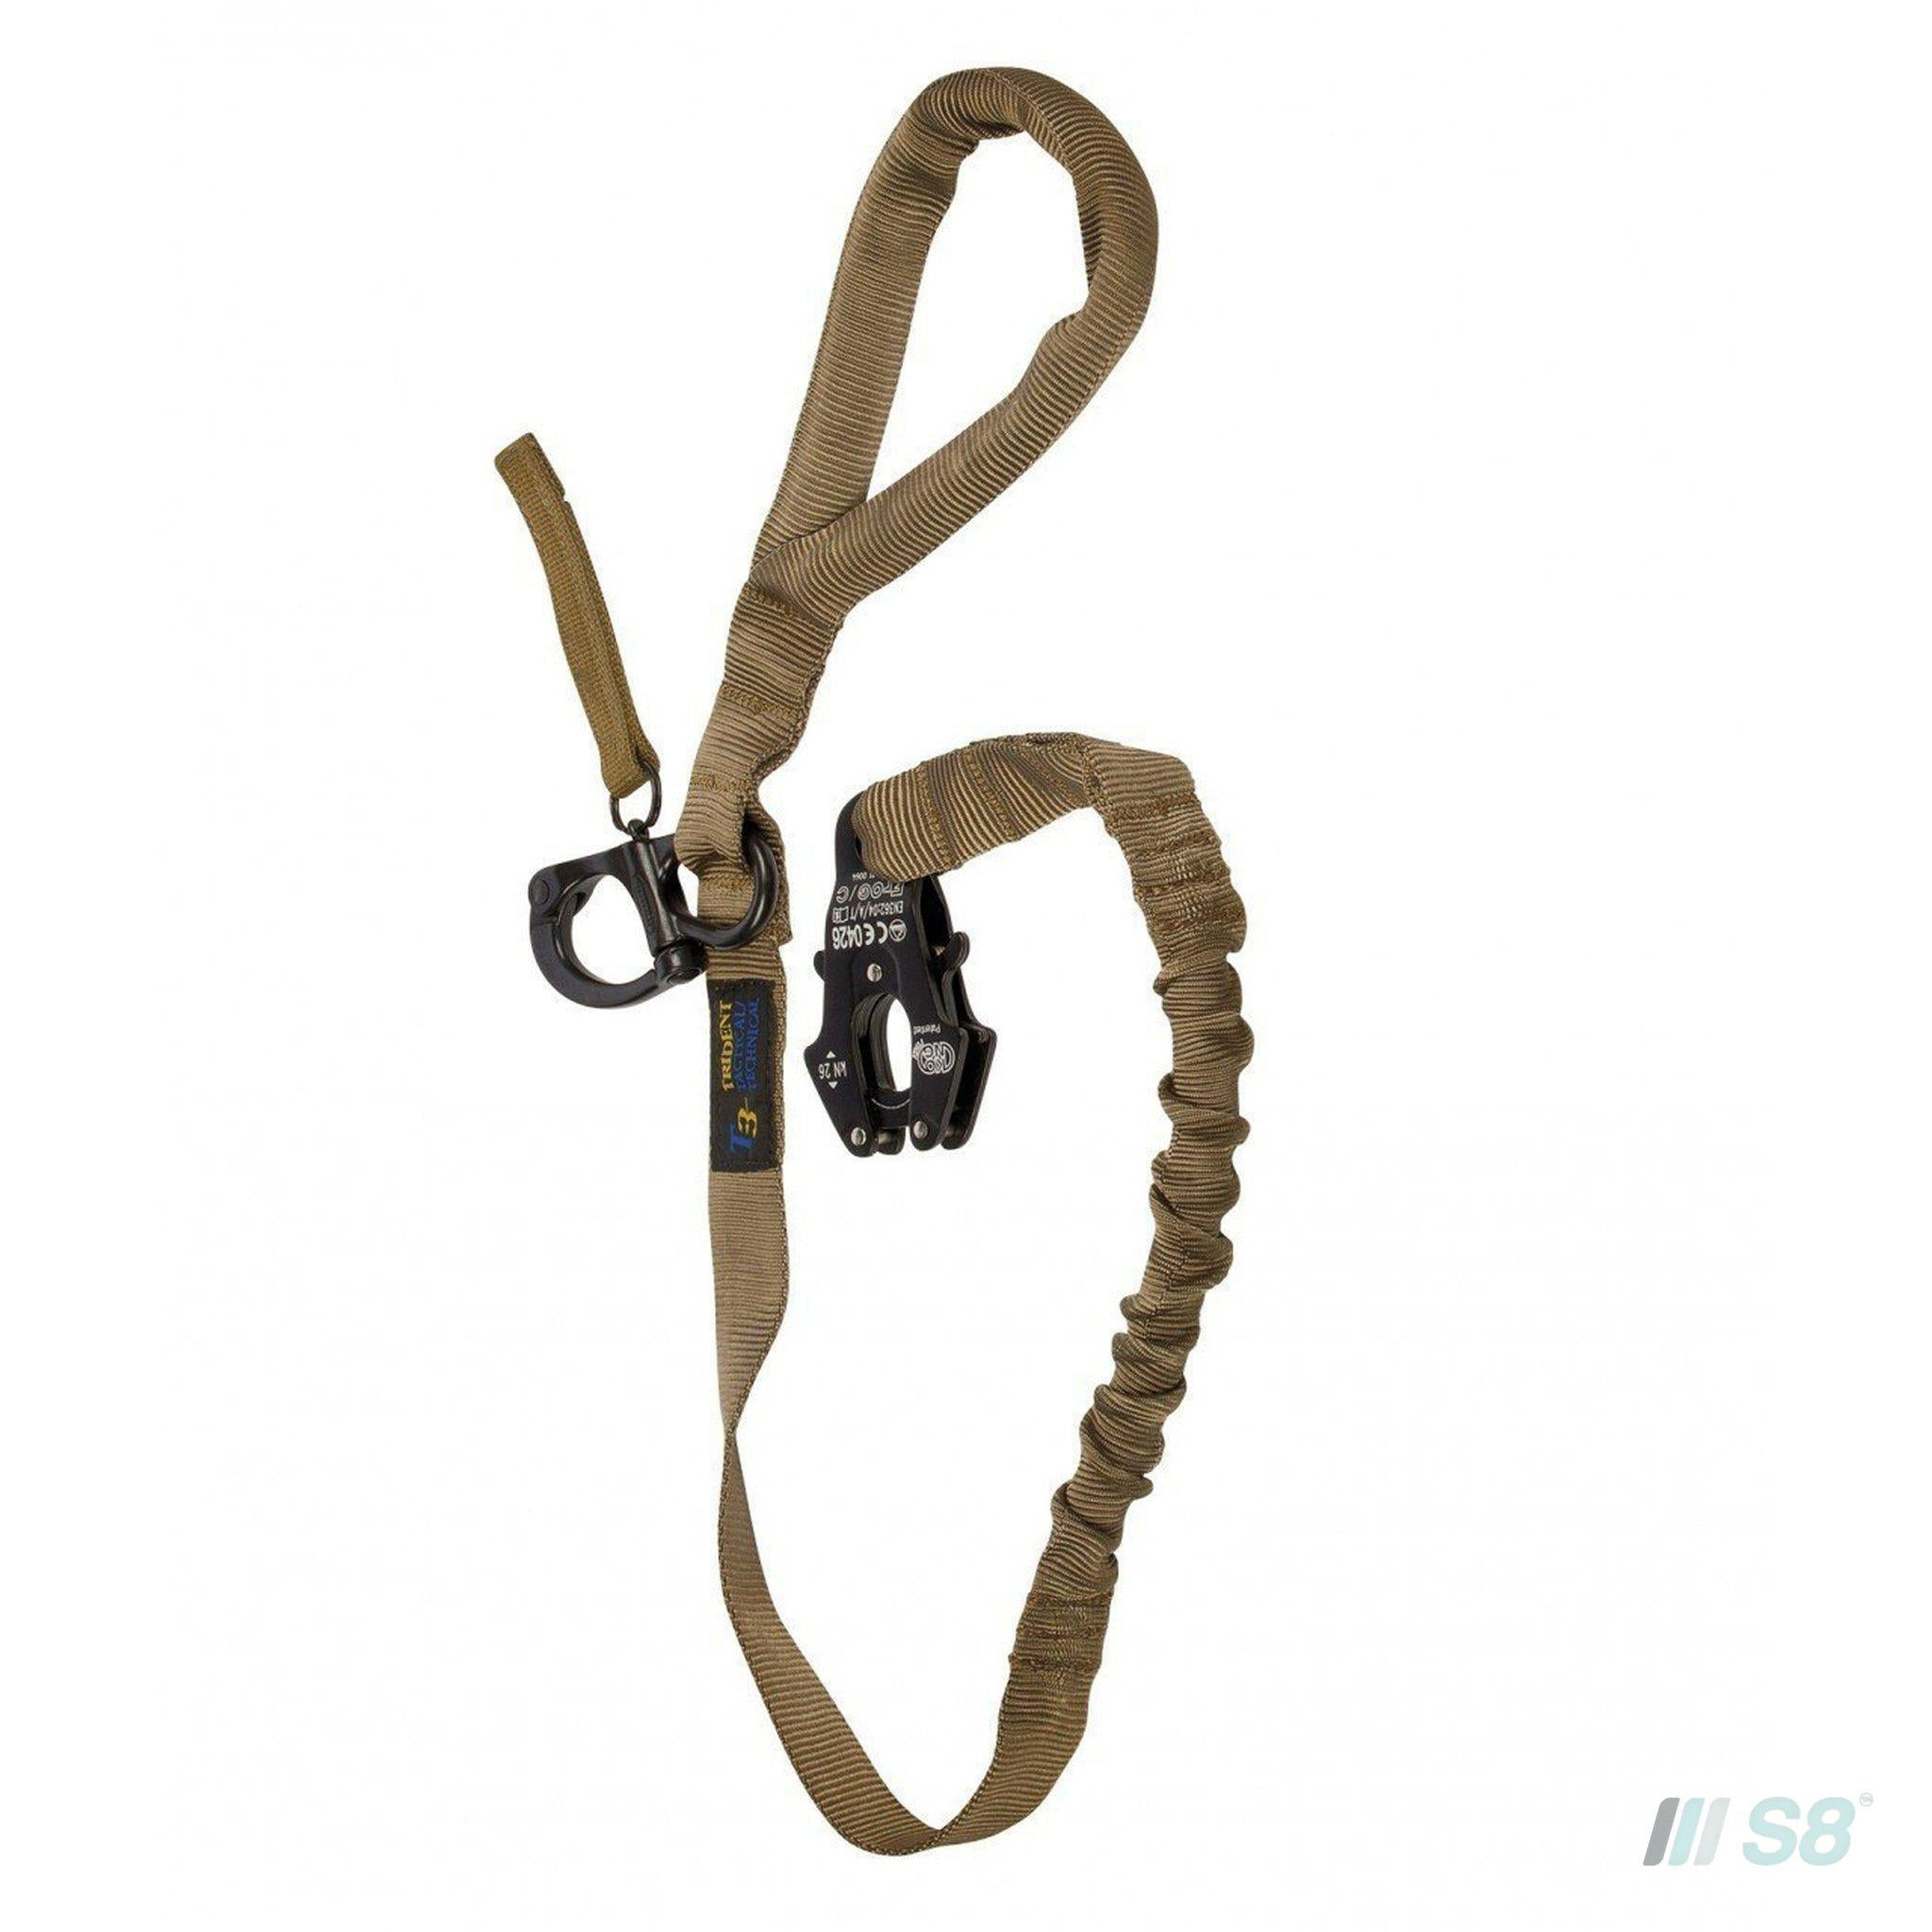 T3 K-9 Tactical Lead Black-T3-S8 Products Group